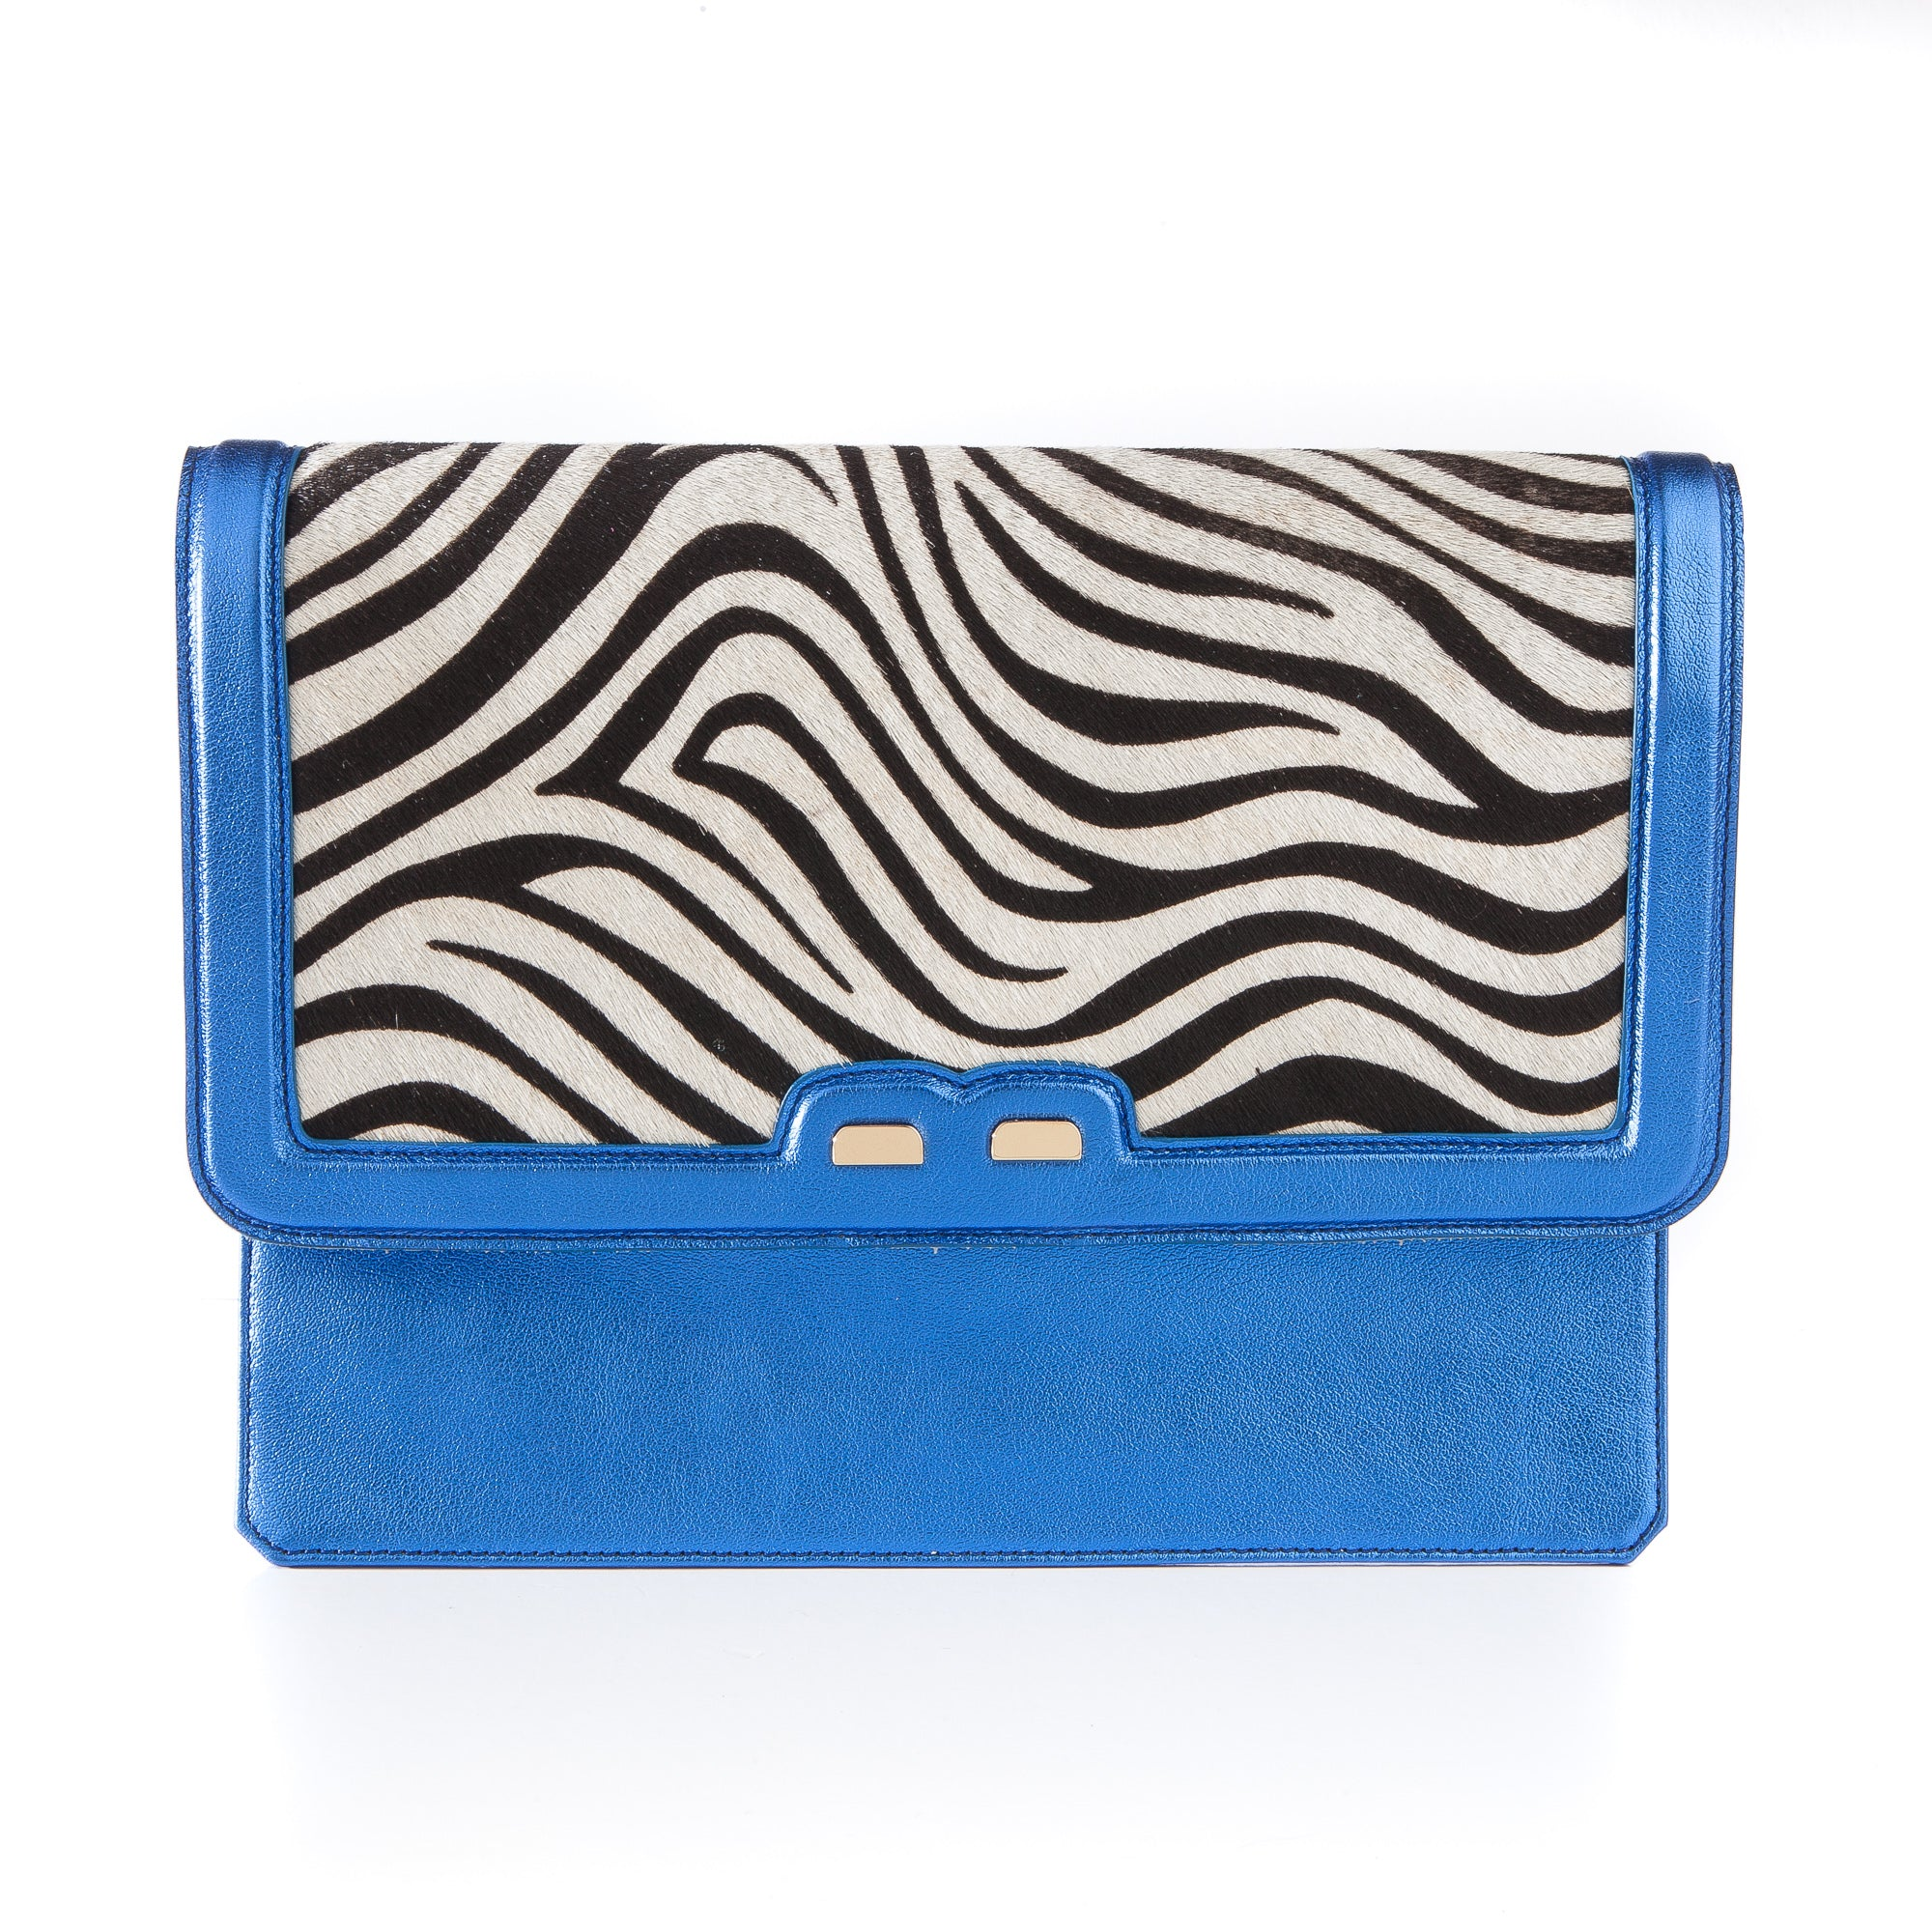 Caffery in Metallic Royal Blue and Zebra Calf Hair